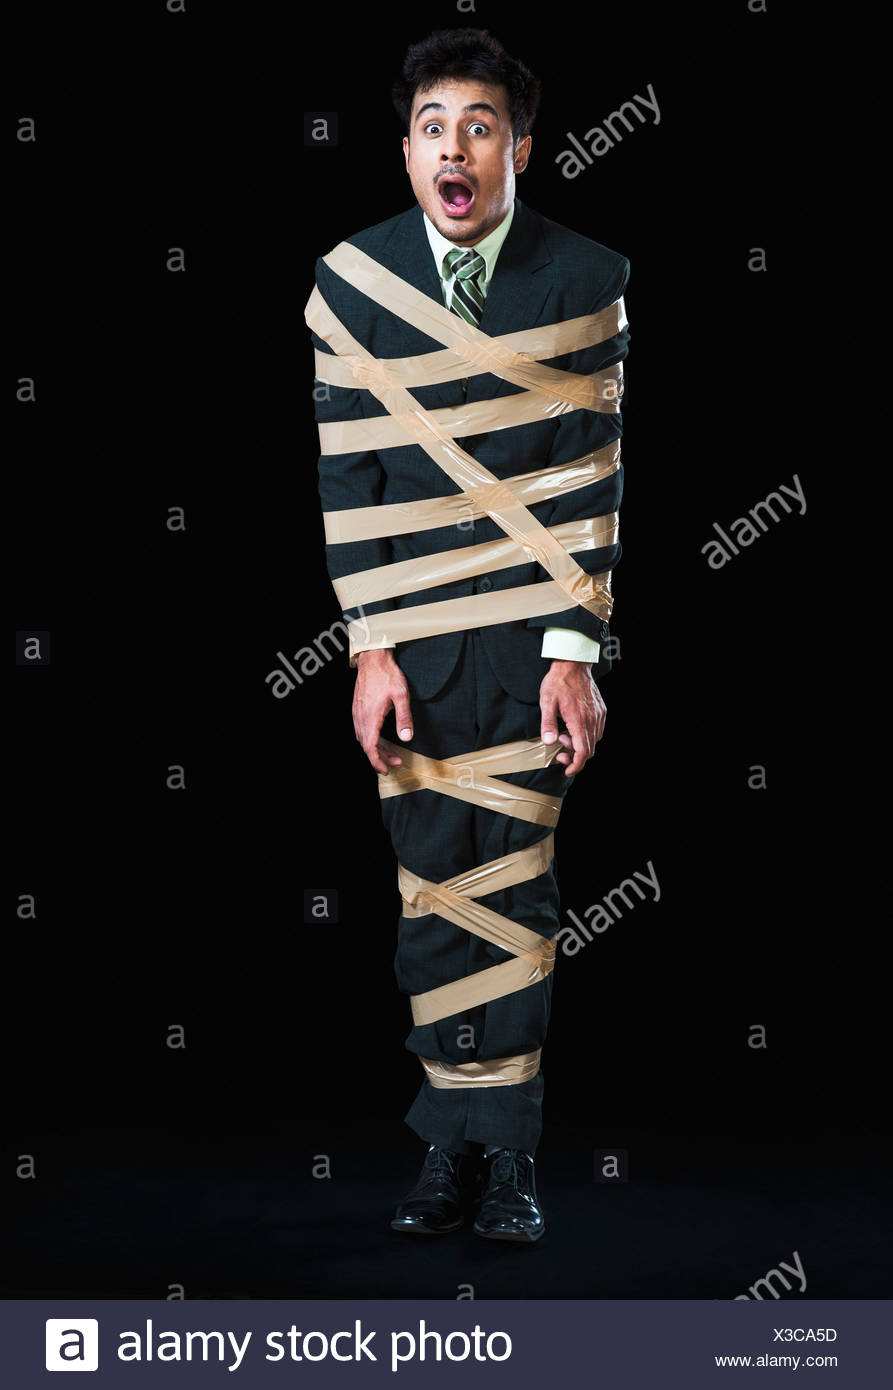 Businessman tied up with adhesive tape looking shocked - Stock Image